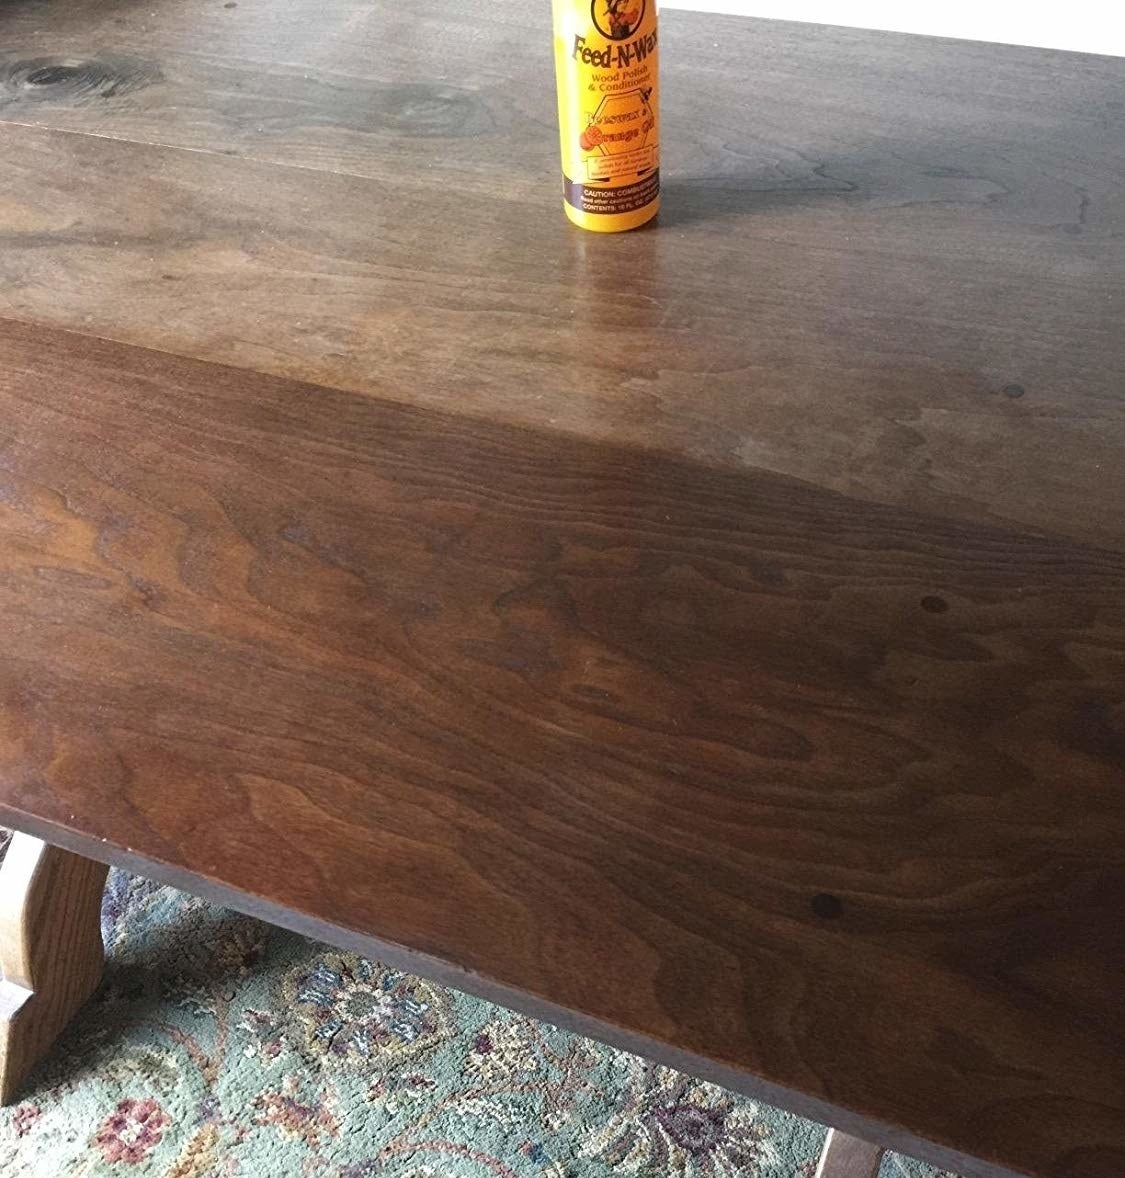 A before and after showing the polish has restored an old scratchy table to its former glory